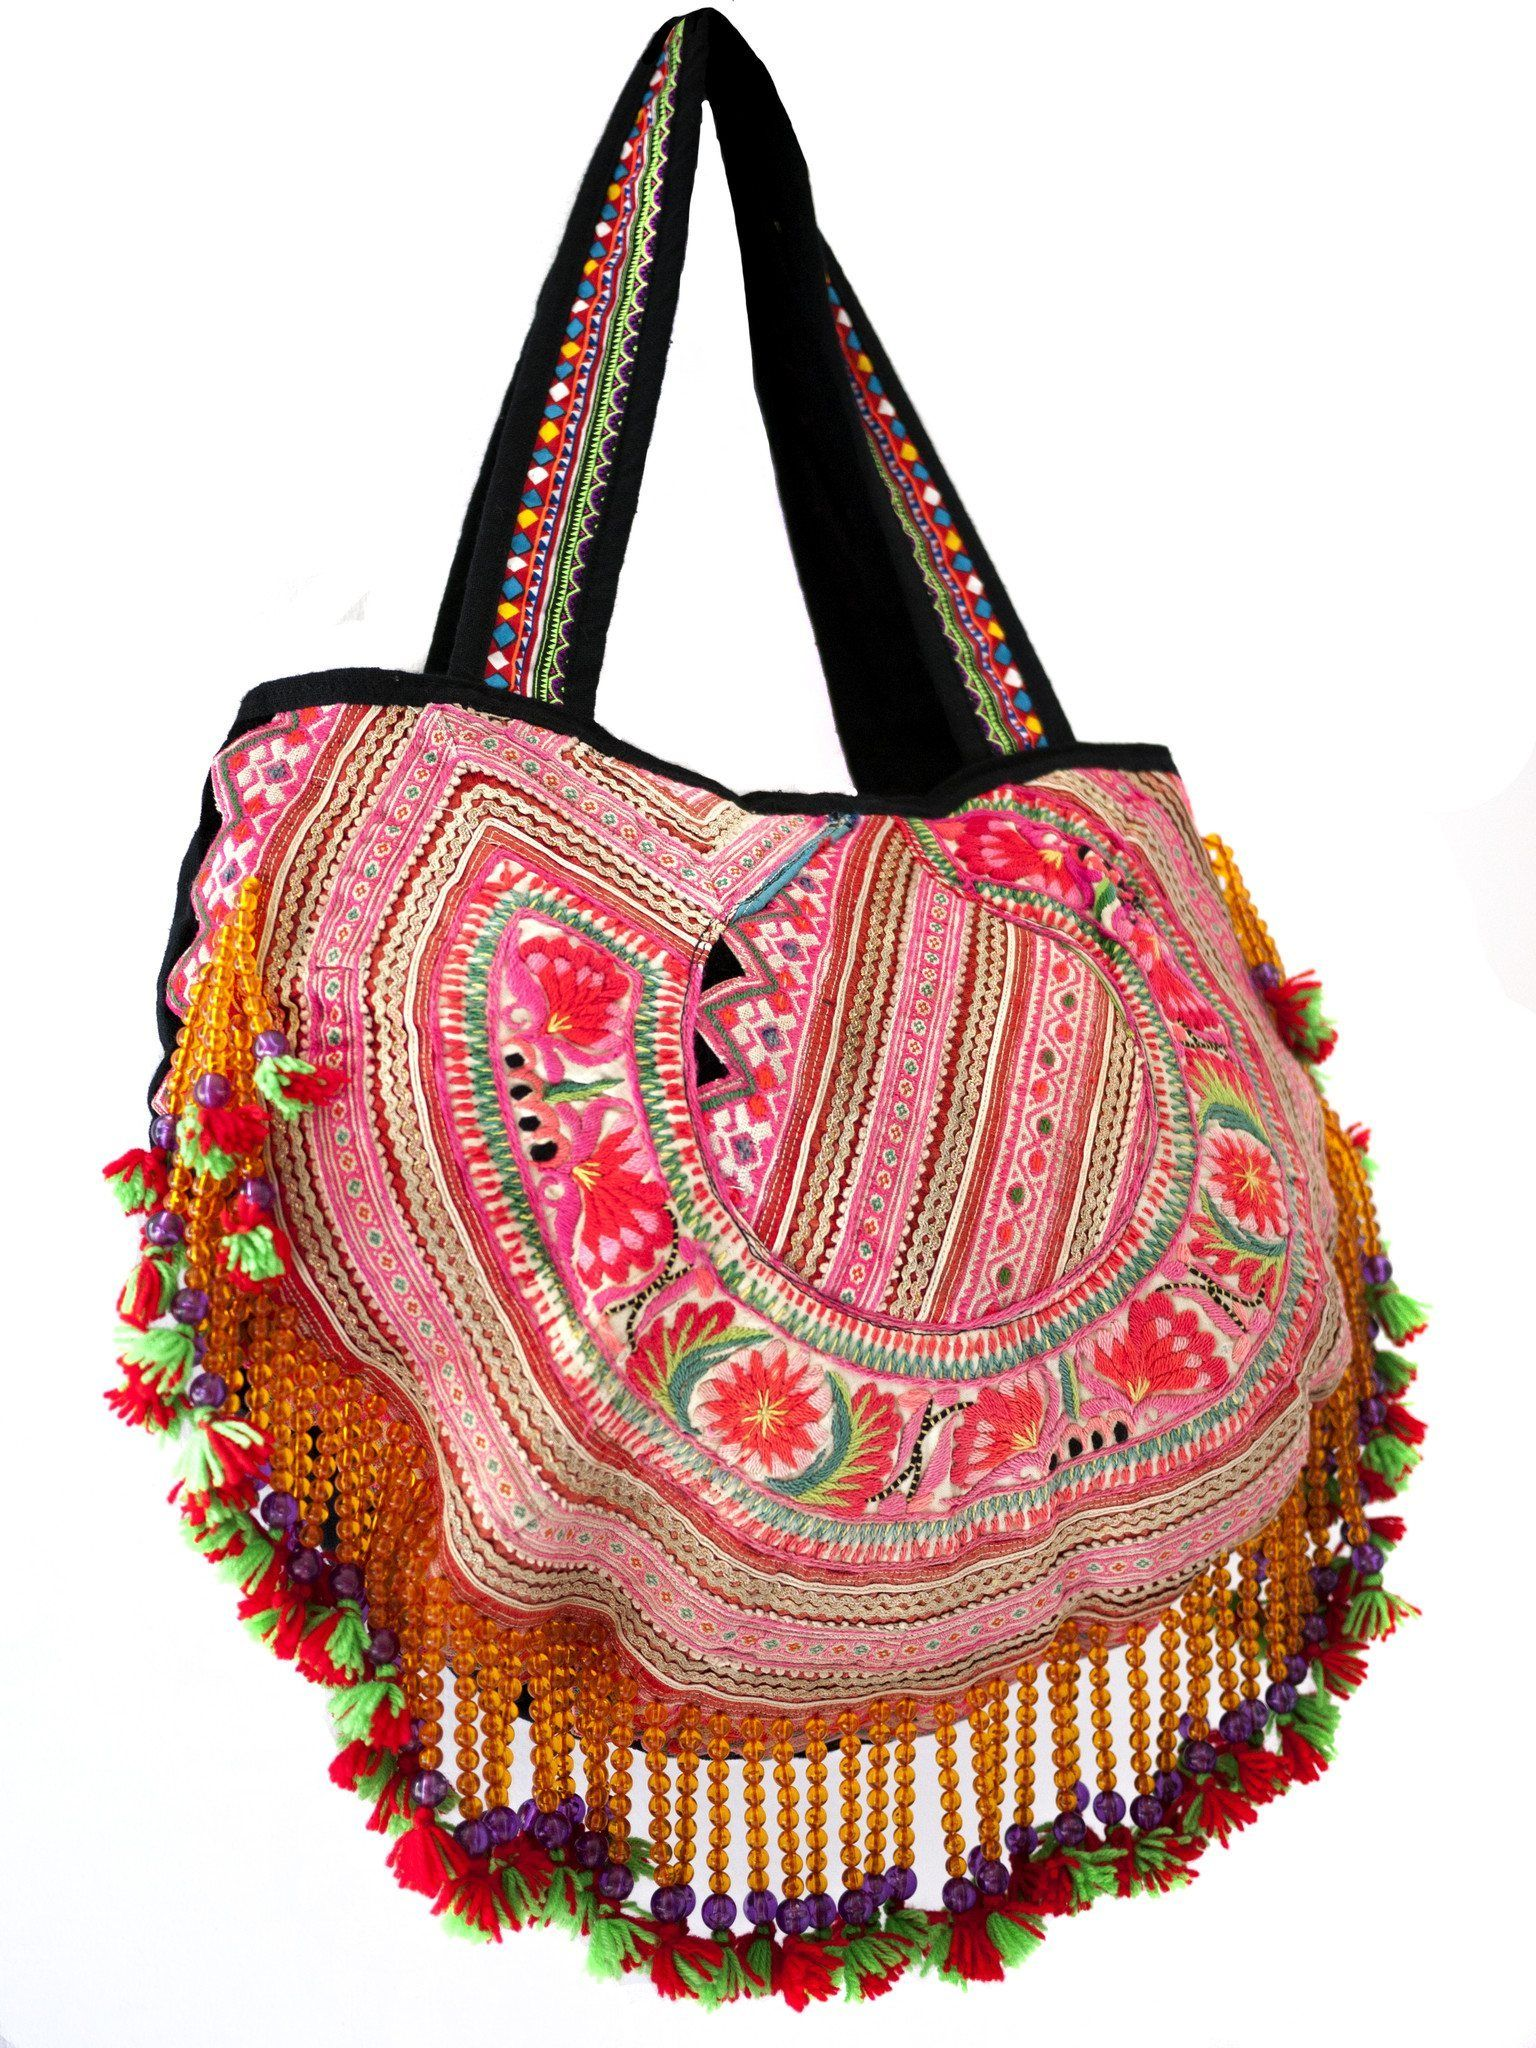 Handmade Hill Tribe Bags with bead work (NS-Shoulder - Embroidery One Side) - CCCollections